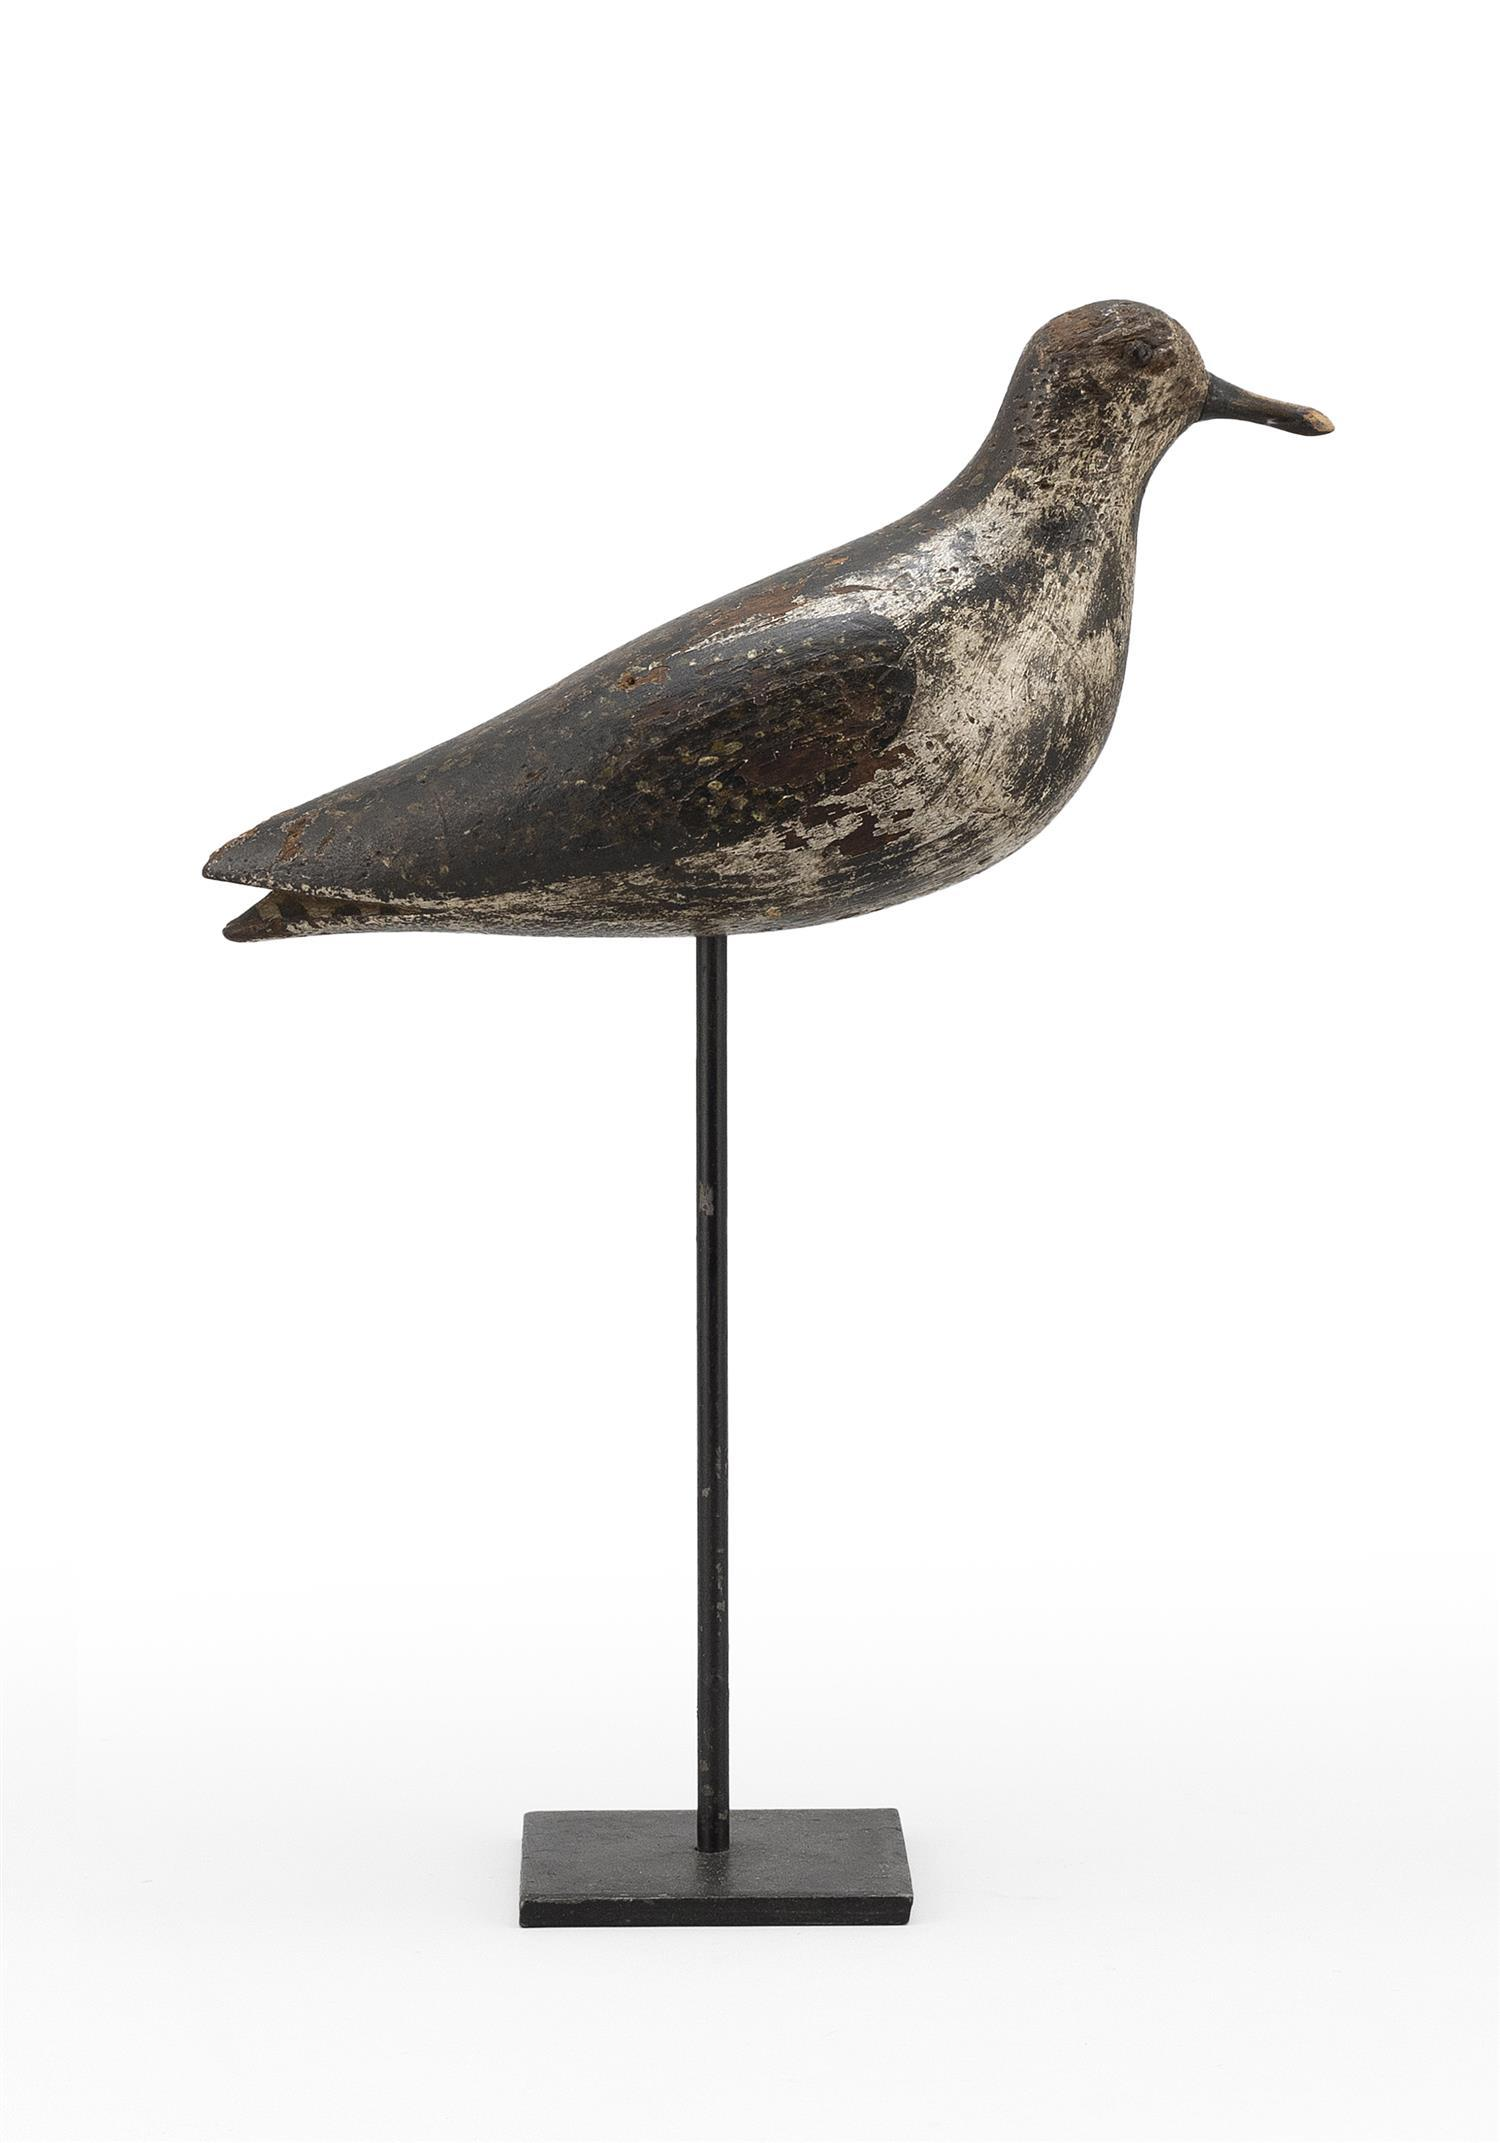 "MASSACHUSETTS GOLDEN PLOVER DECOY Maker unknown. Tack eyes. Original paint with considerable gunning wear. Length 10""."